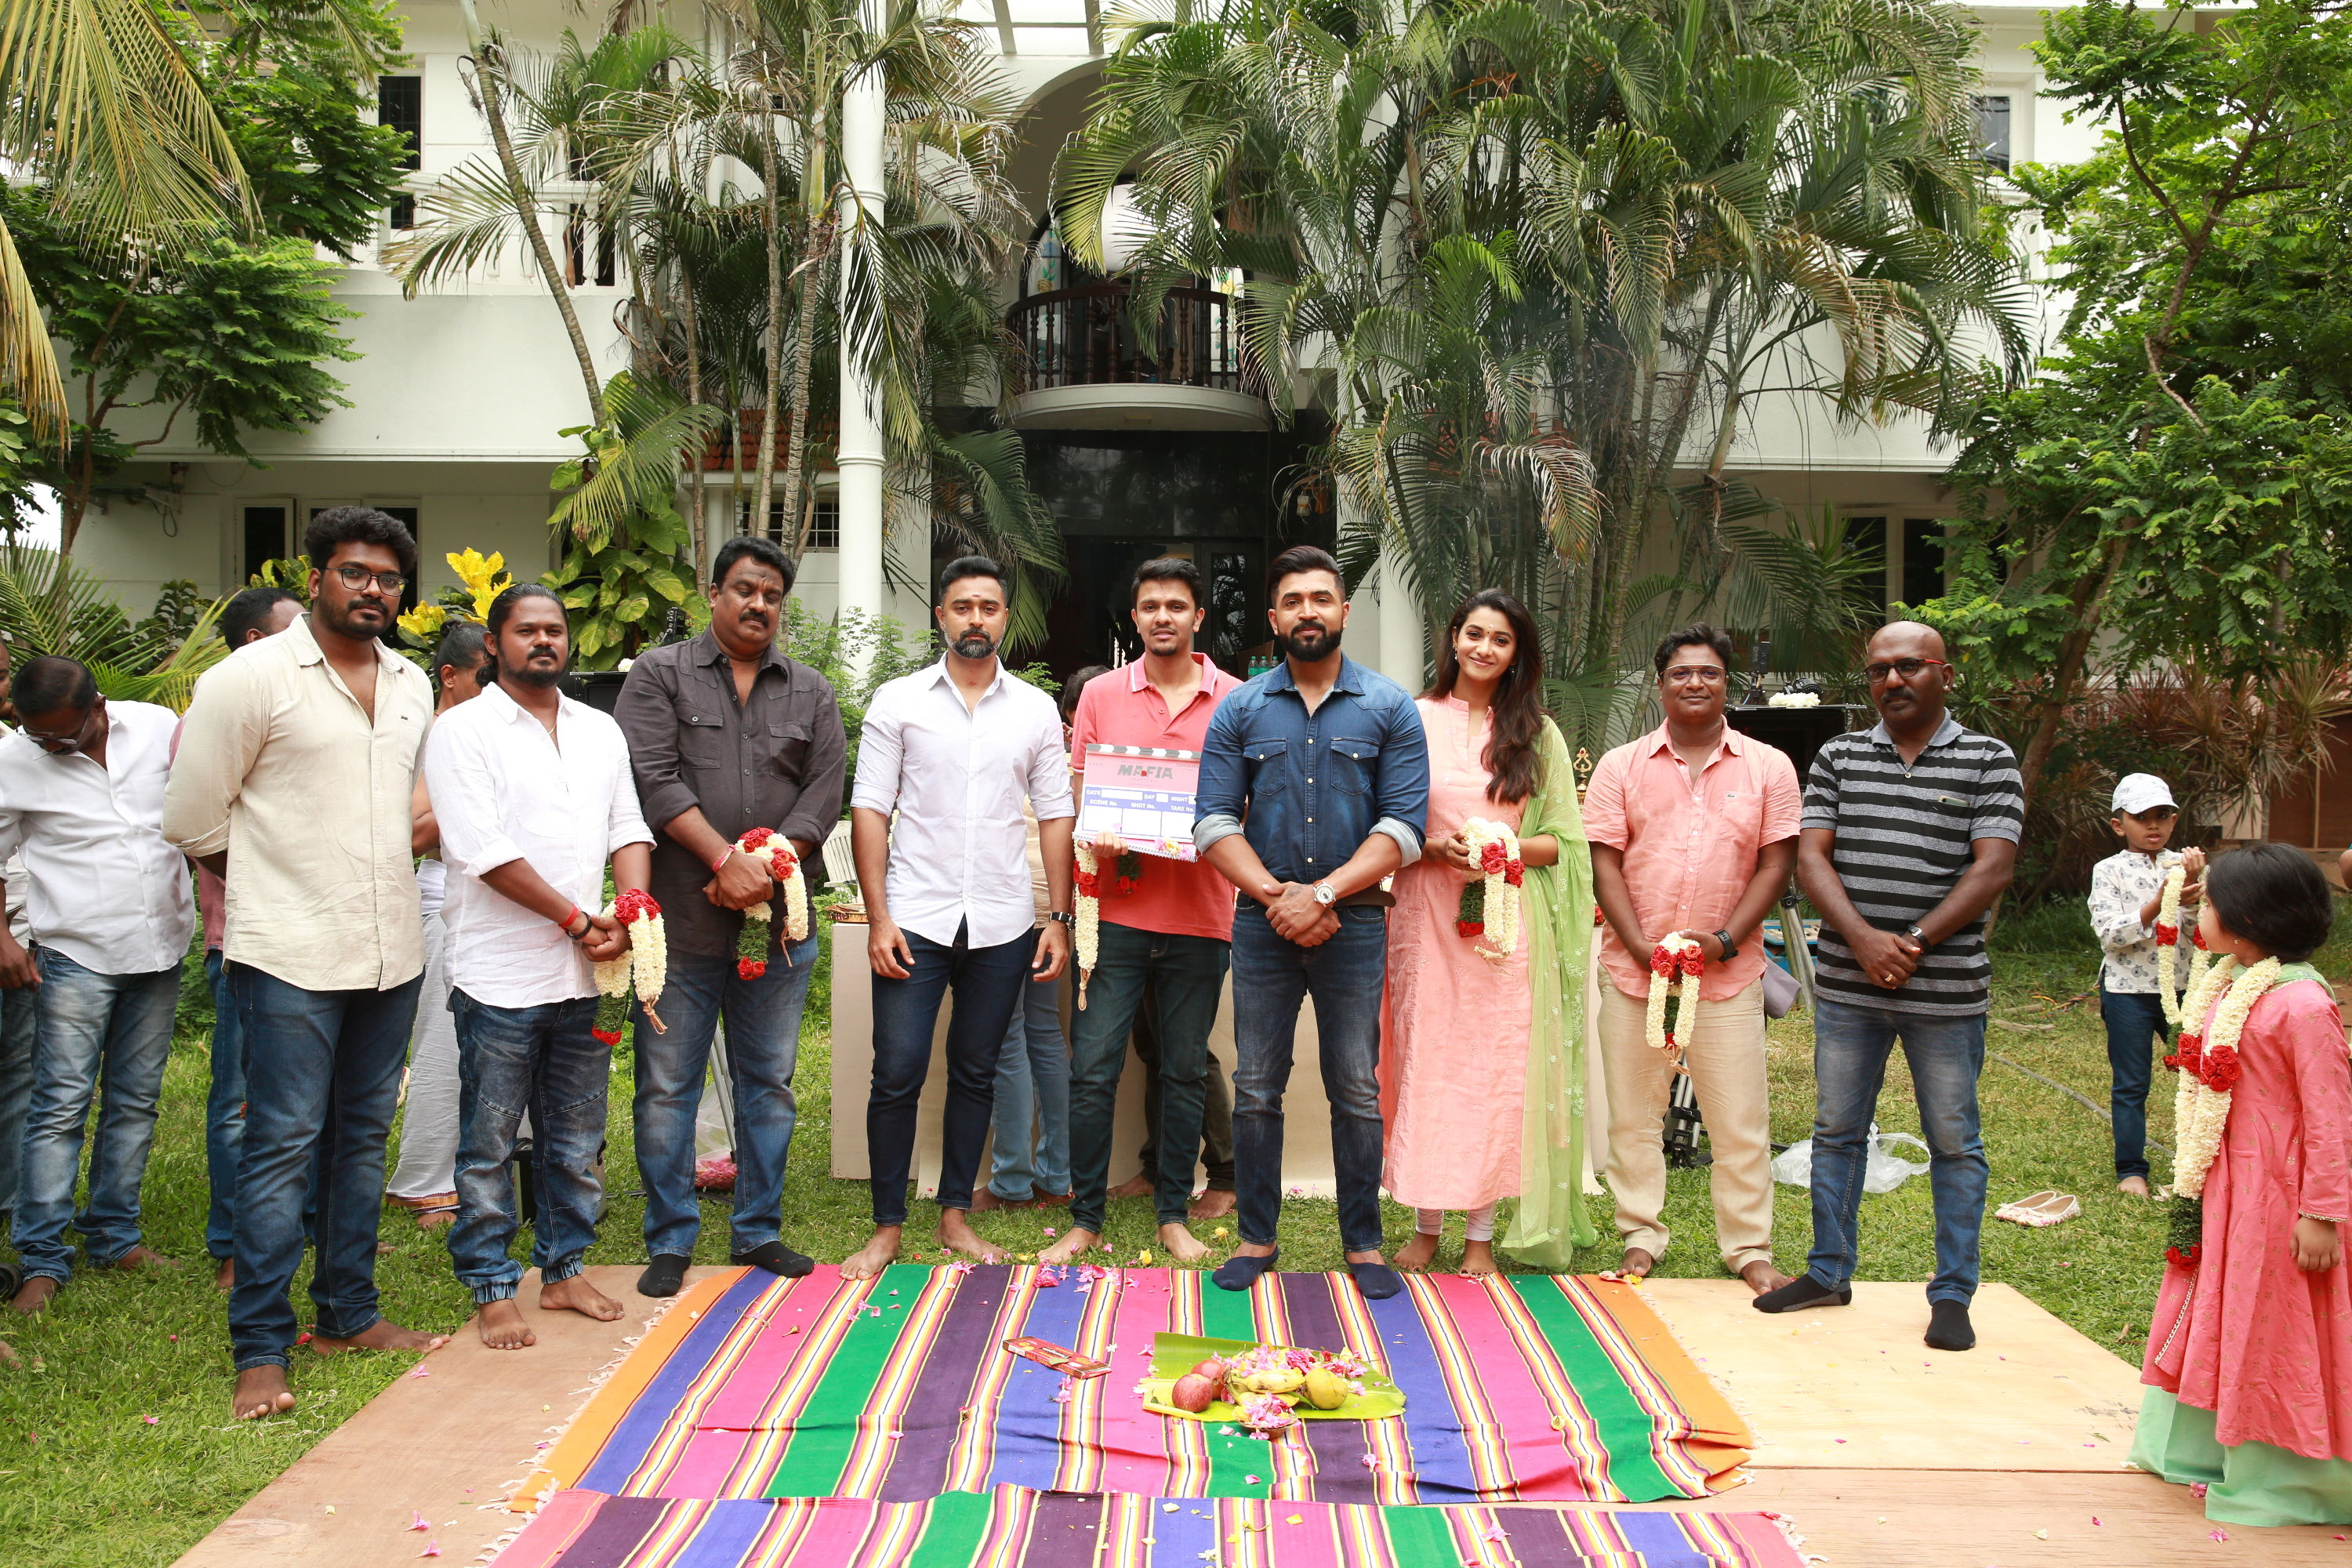 Arun Vijay Karthick Naren MAFIA Movie Launched